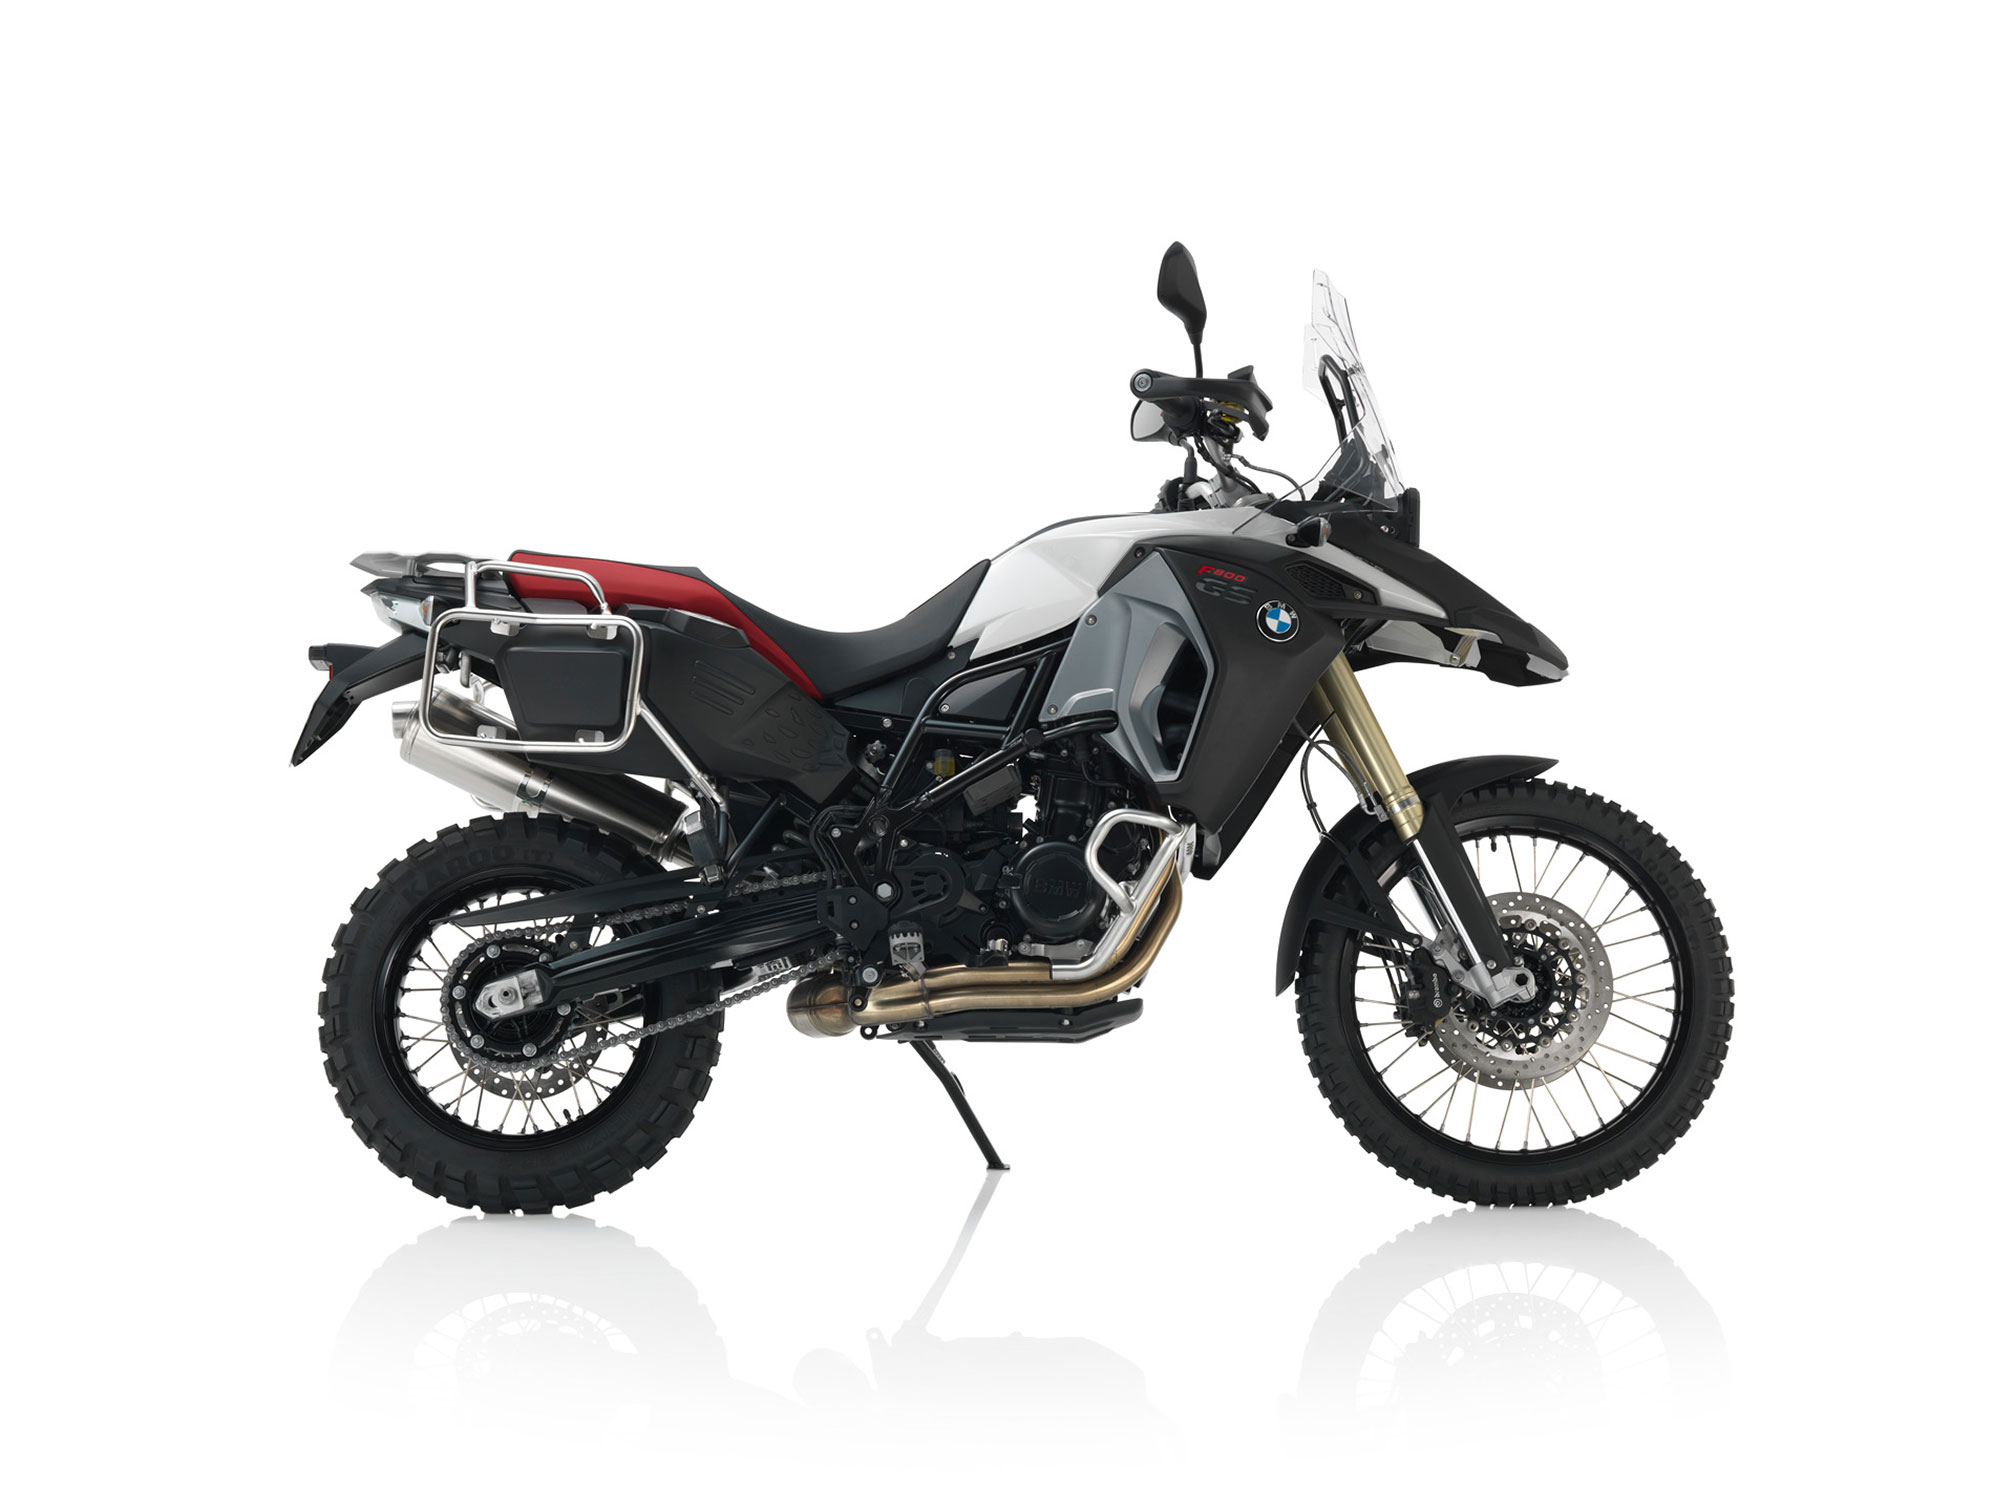 F800gs Trophy Specs Autos Post